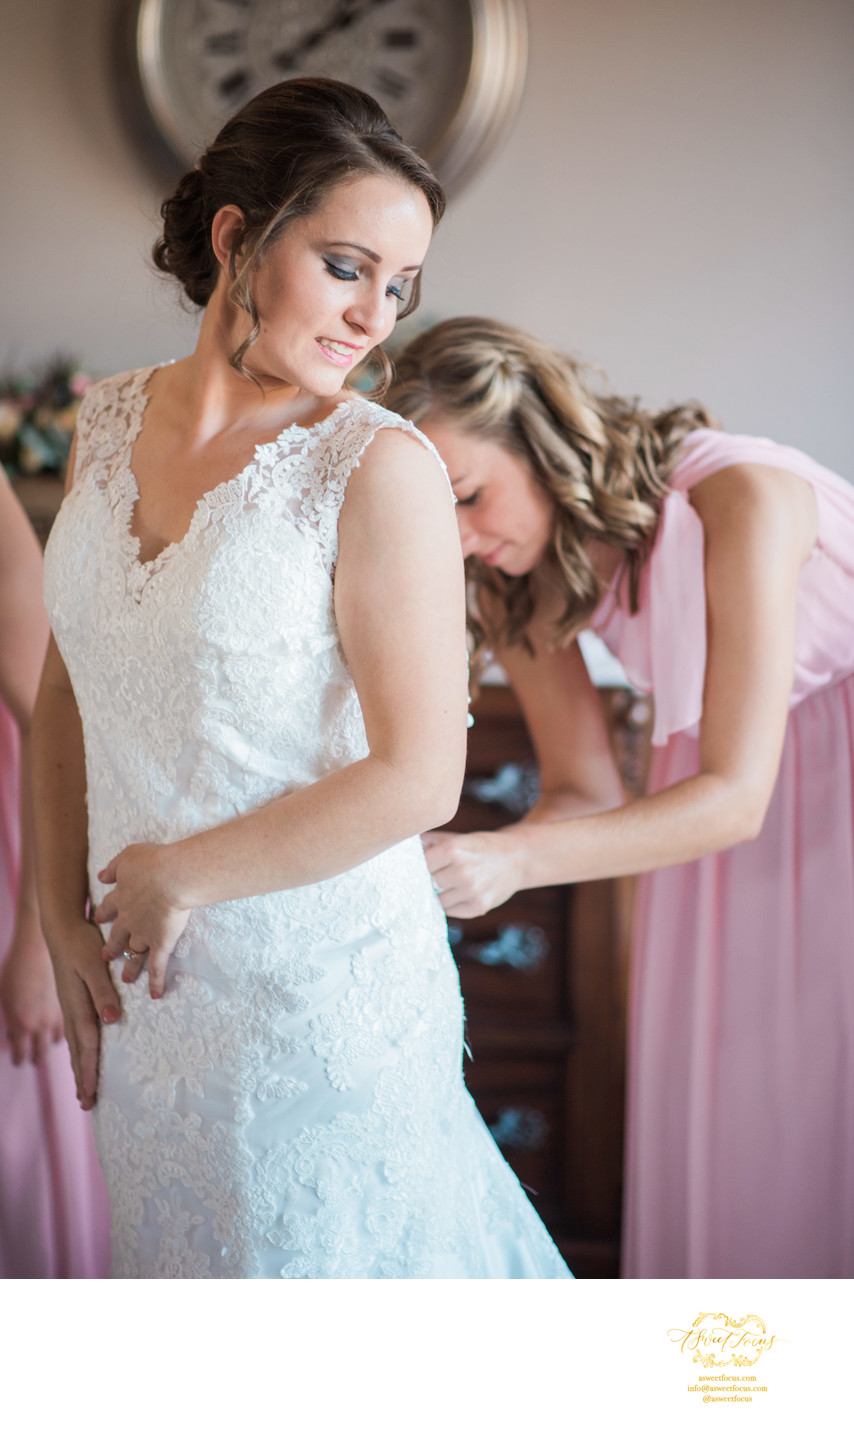 Silver Oaks Chateau bride dressing candid photography